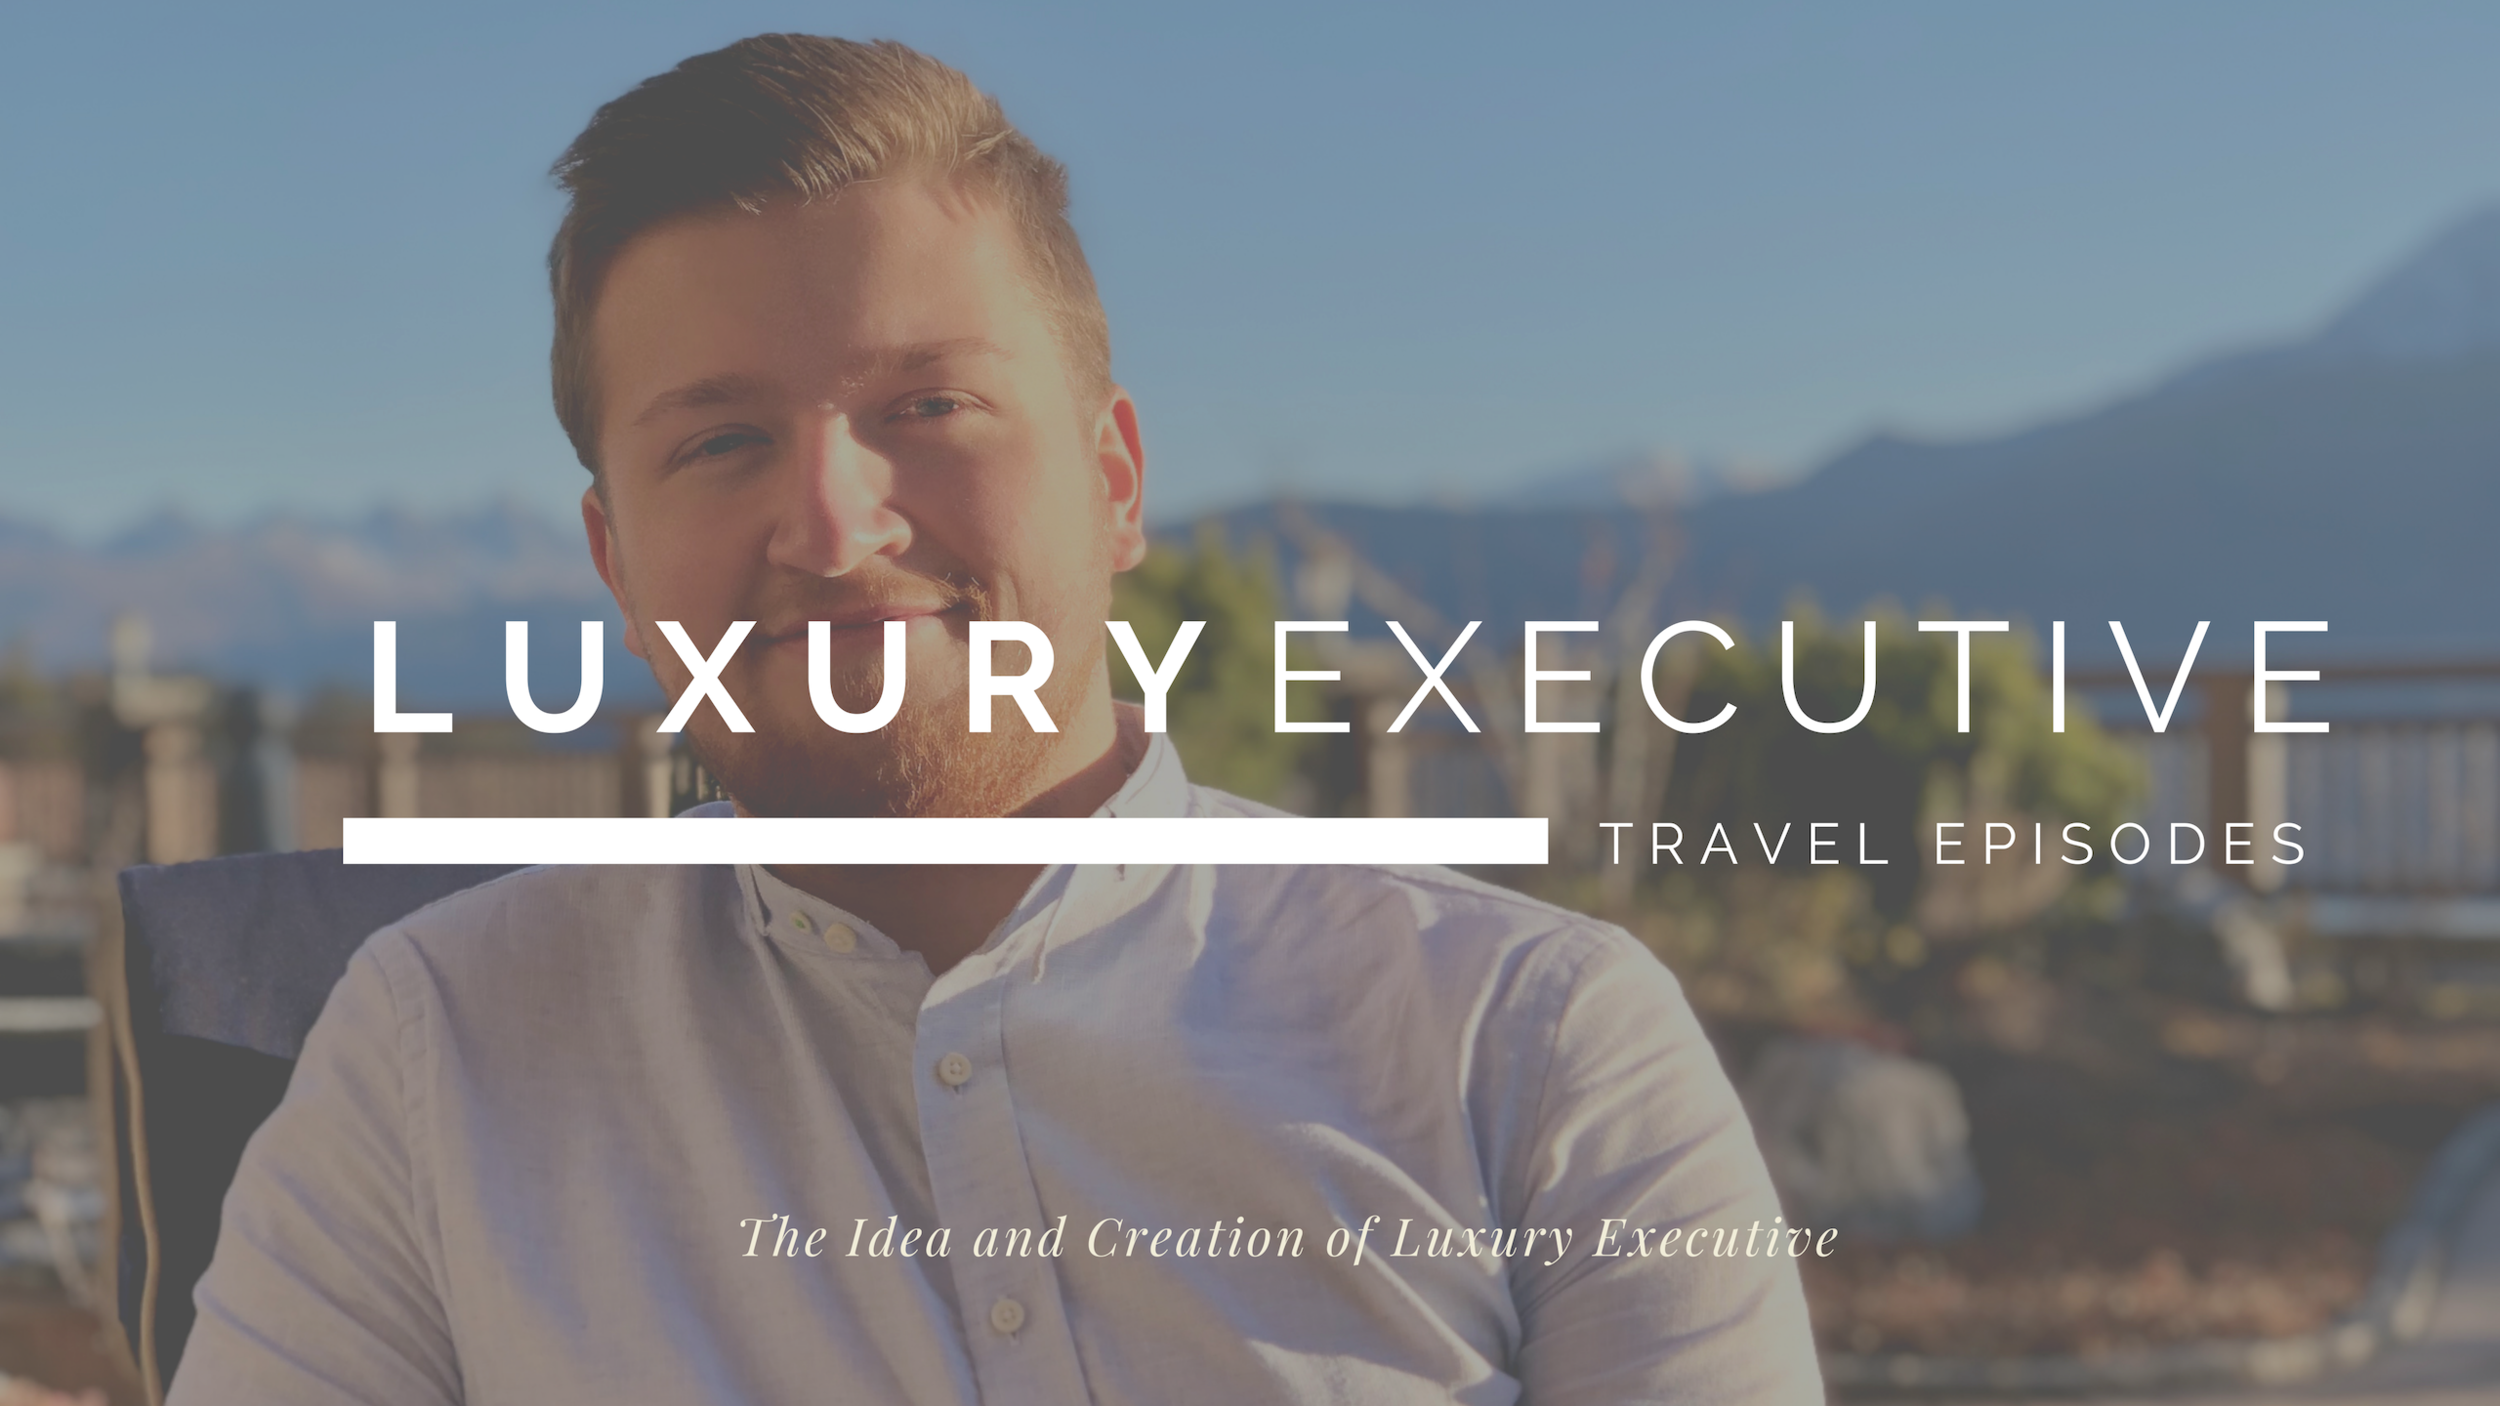 How it all began - Listen to Daniel Egger, Editor on how his passion to the luxury hospitality made him create Luxury Executive and how he and his team started this business.